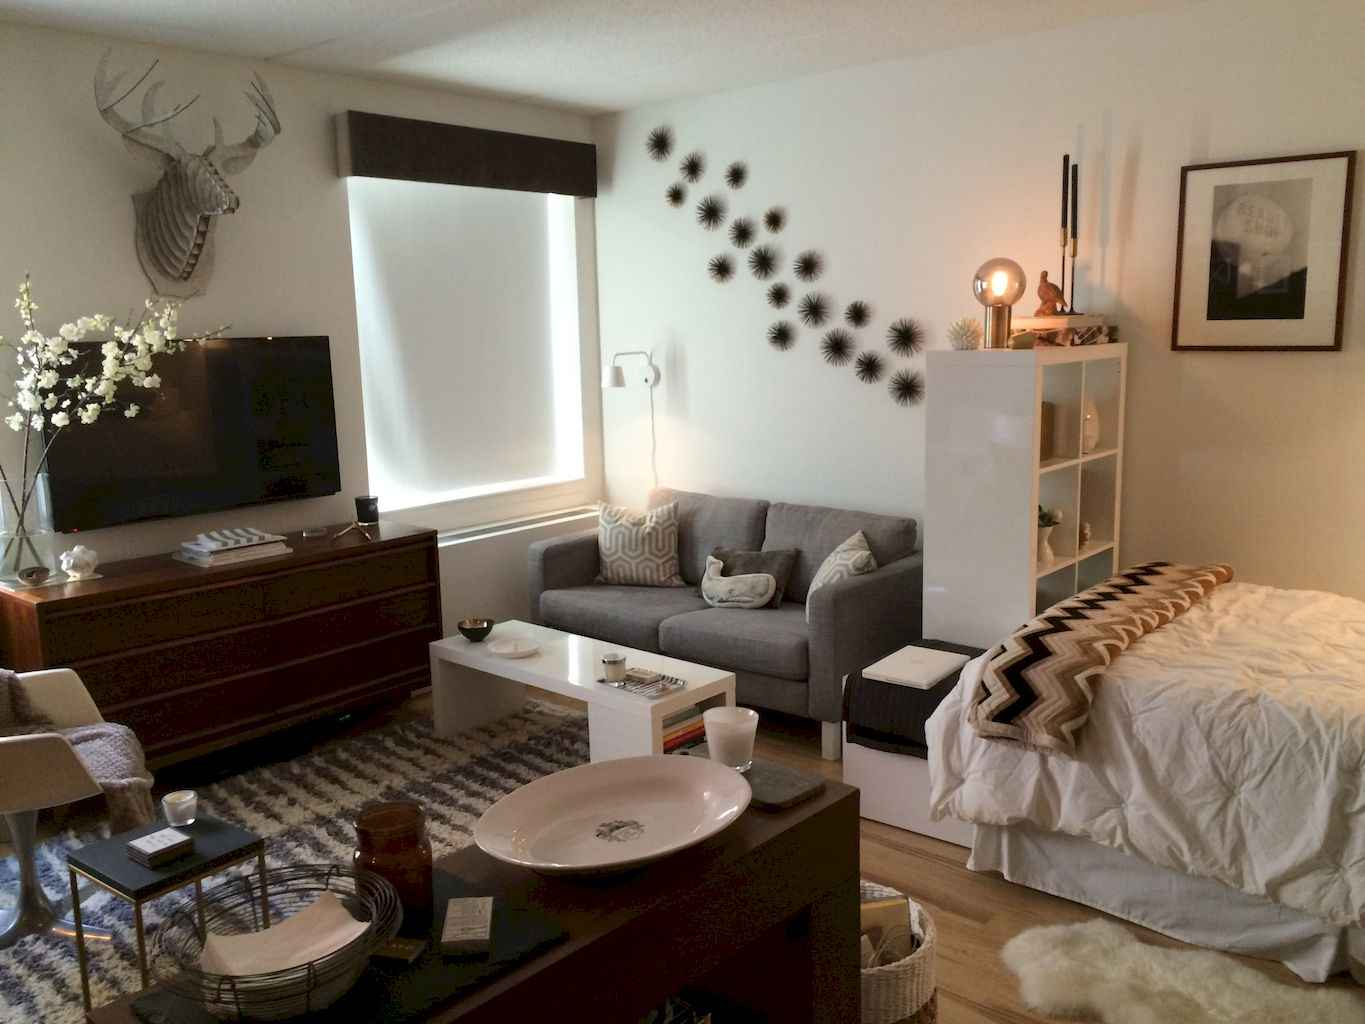 Small apartment studio decorating ideas on a budget (1)